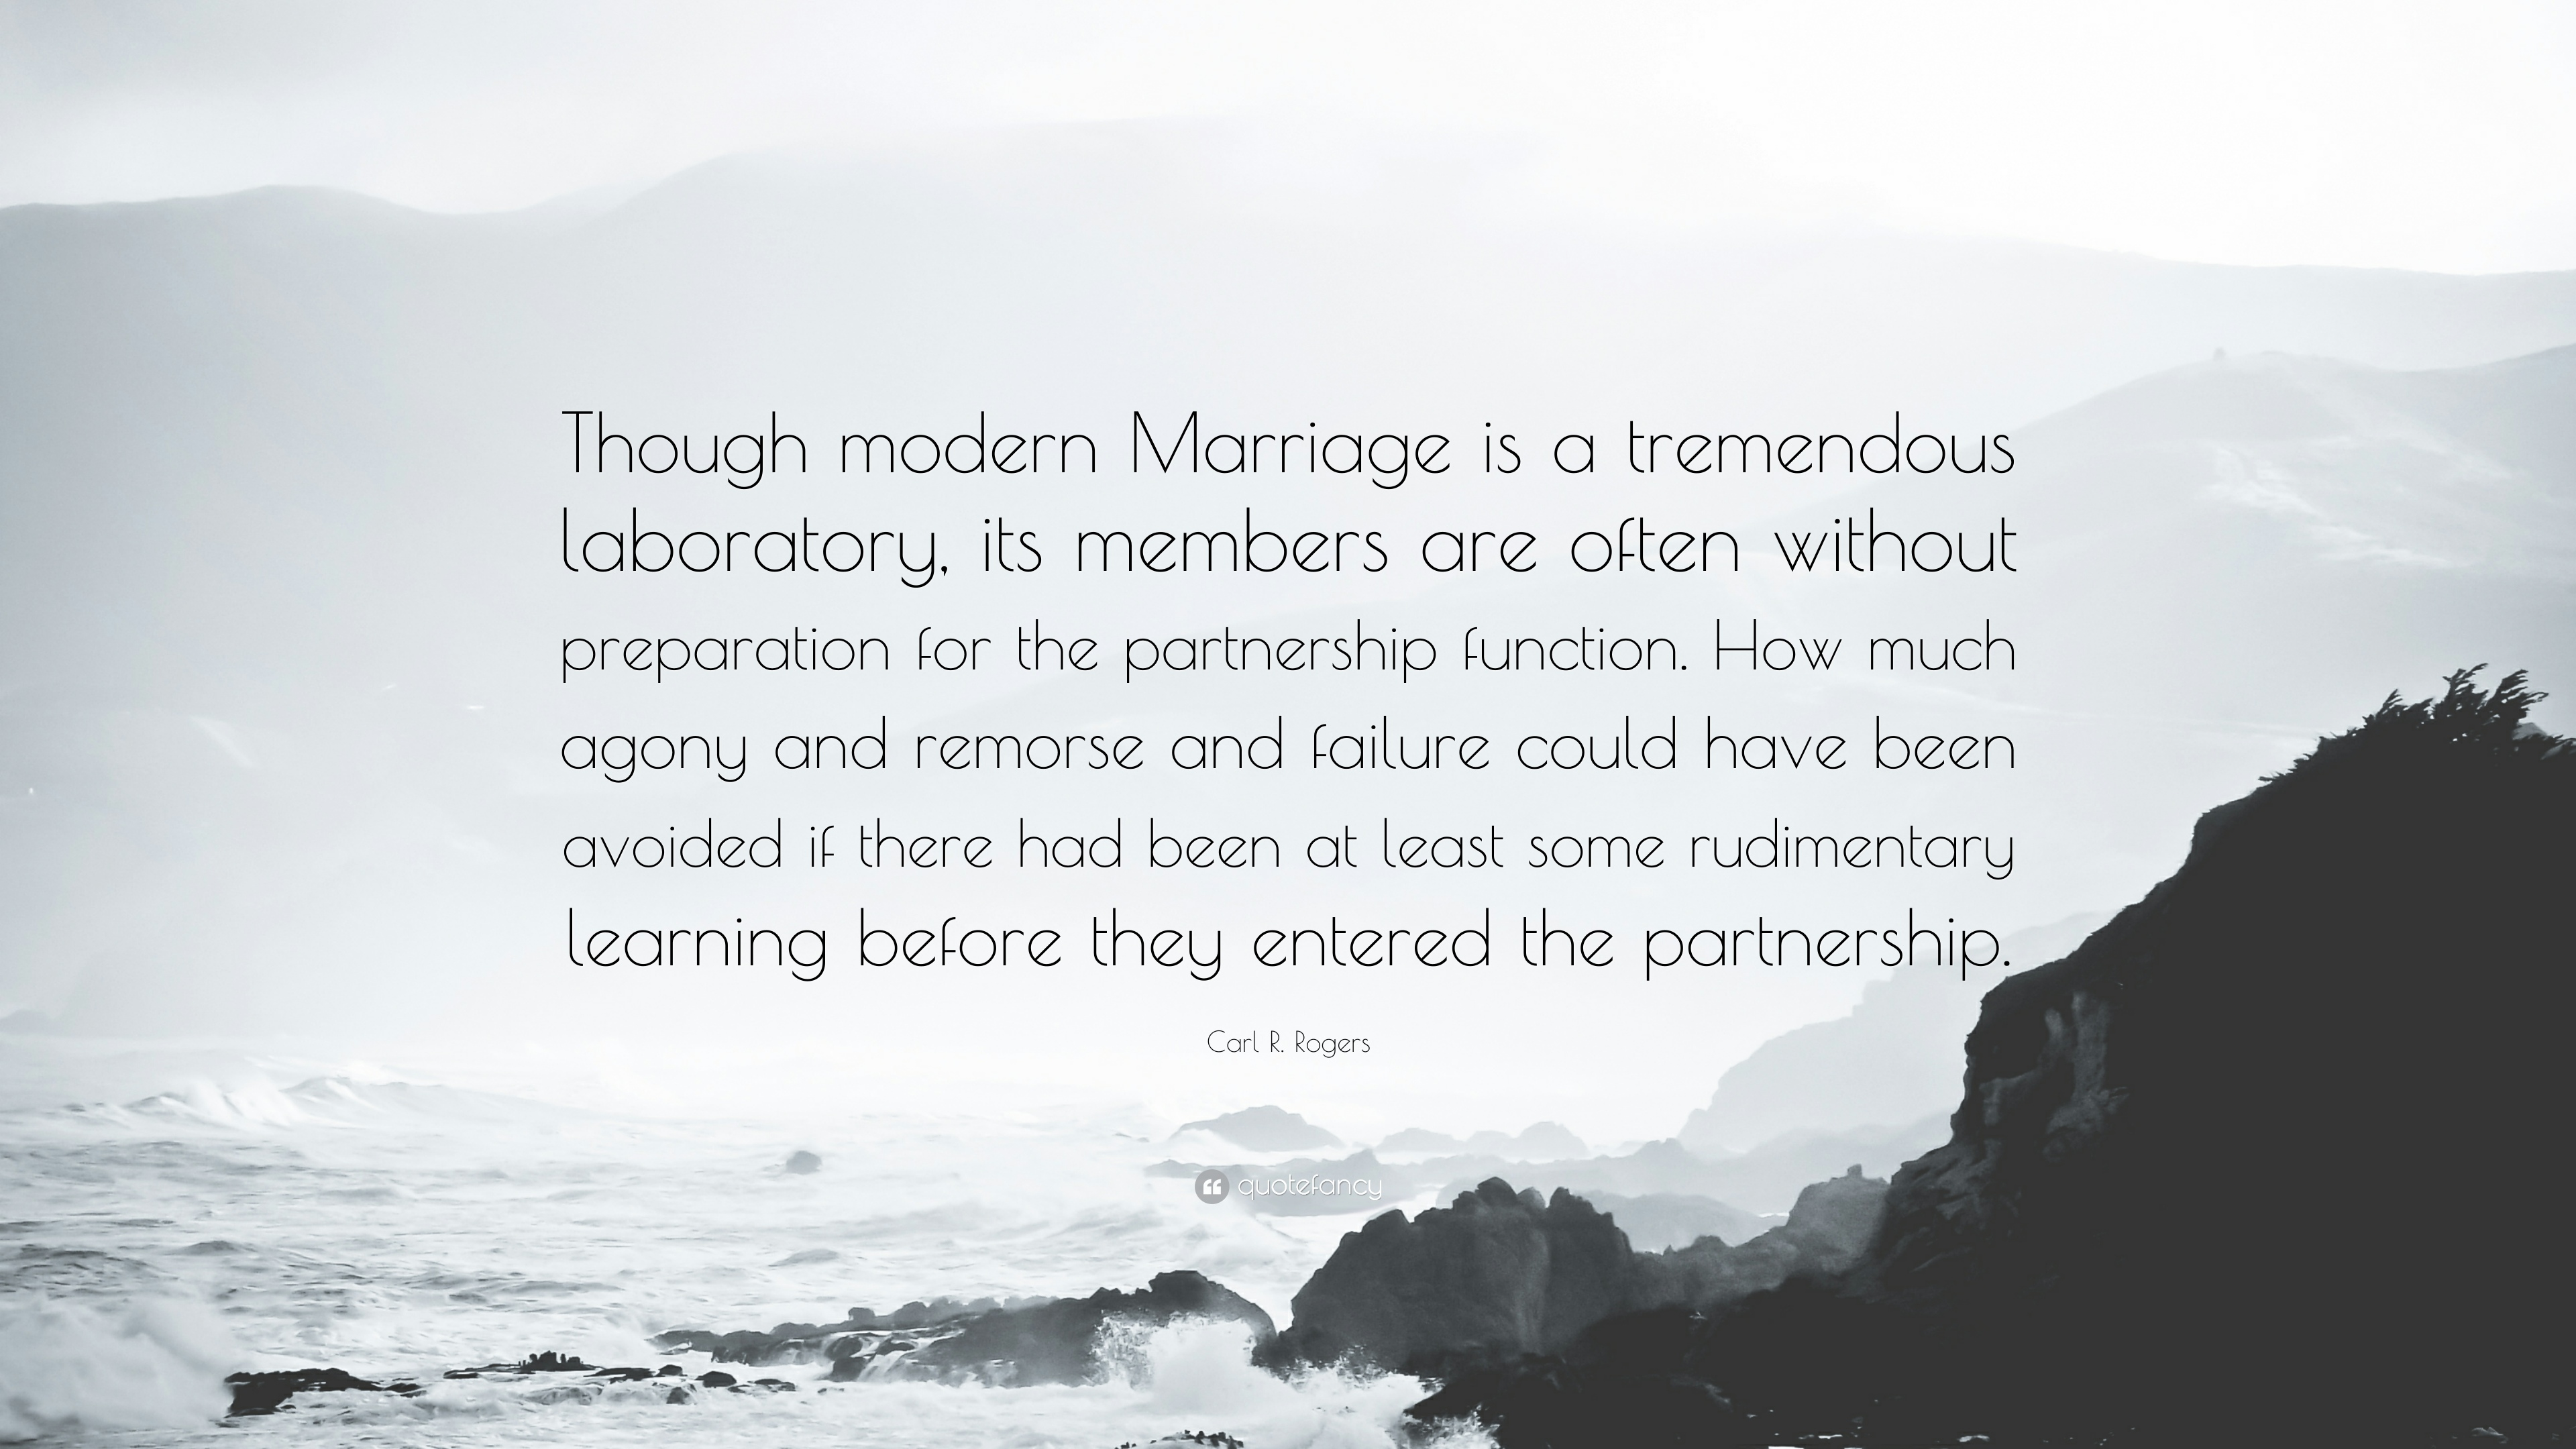 Etonnant Carl R. Rogers Quote: U201cThough Modern Marriage Is A Tremendous Laboratory,  Its